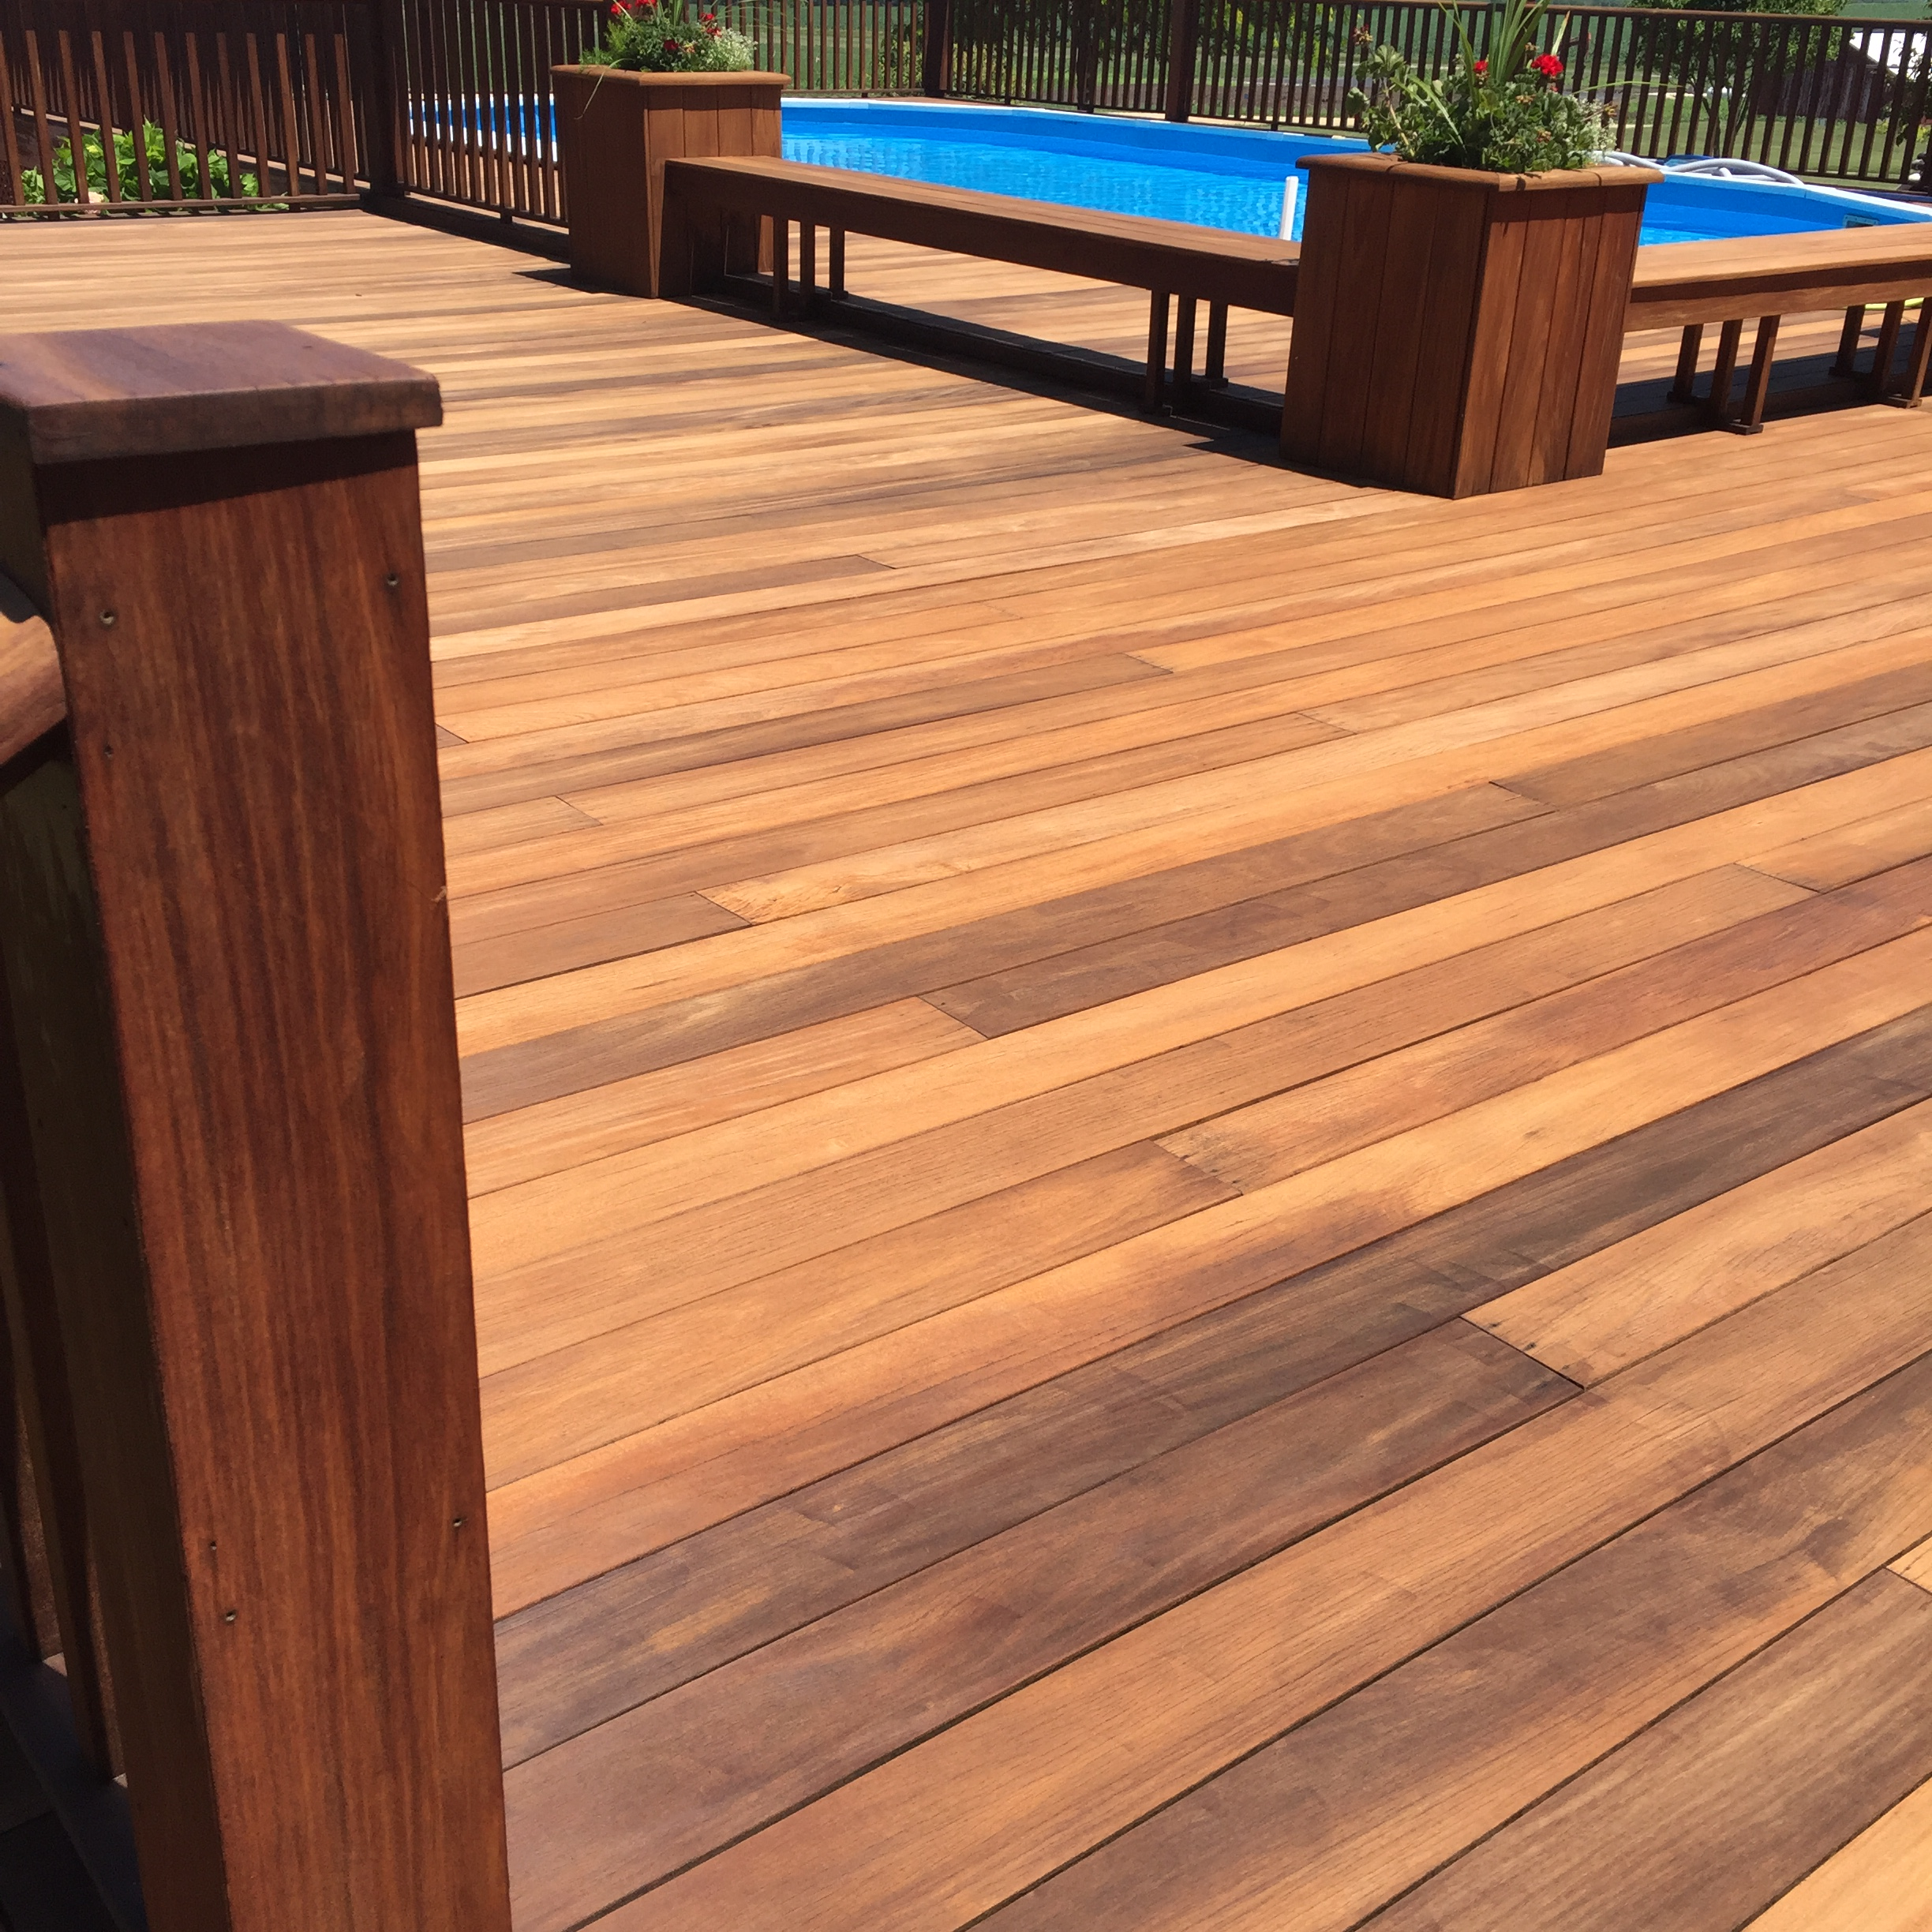 More poolside ipe deck beauty.